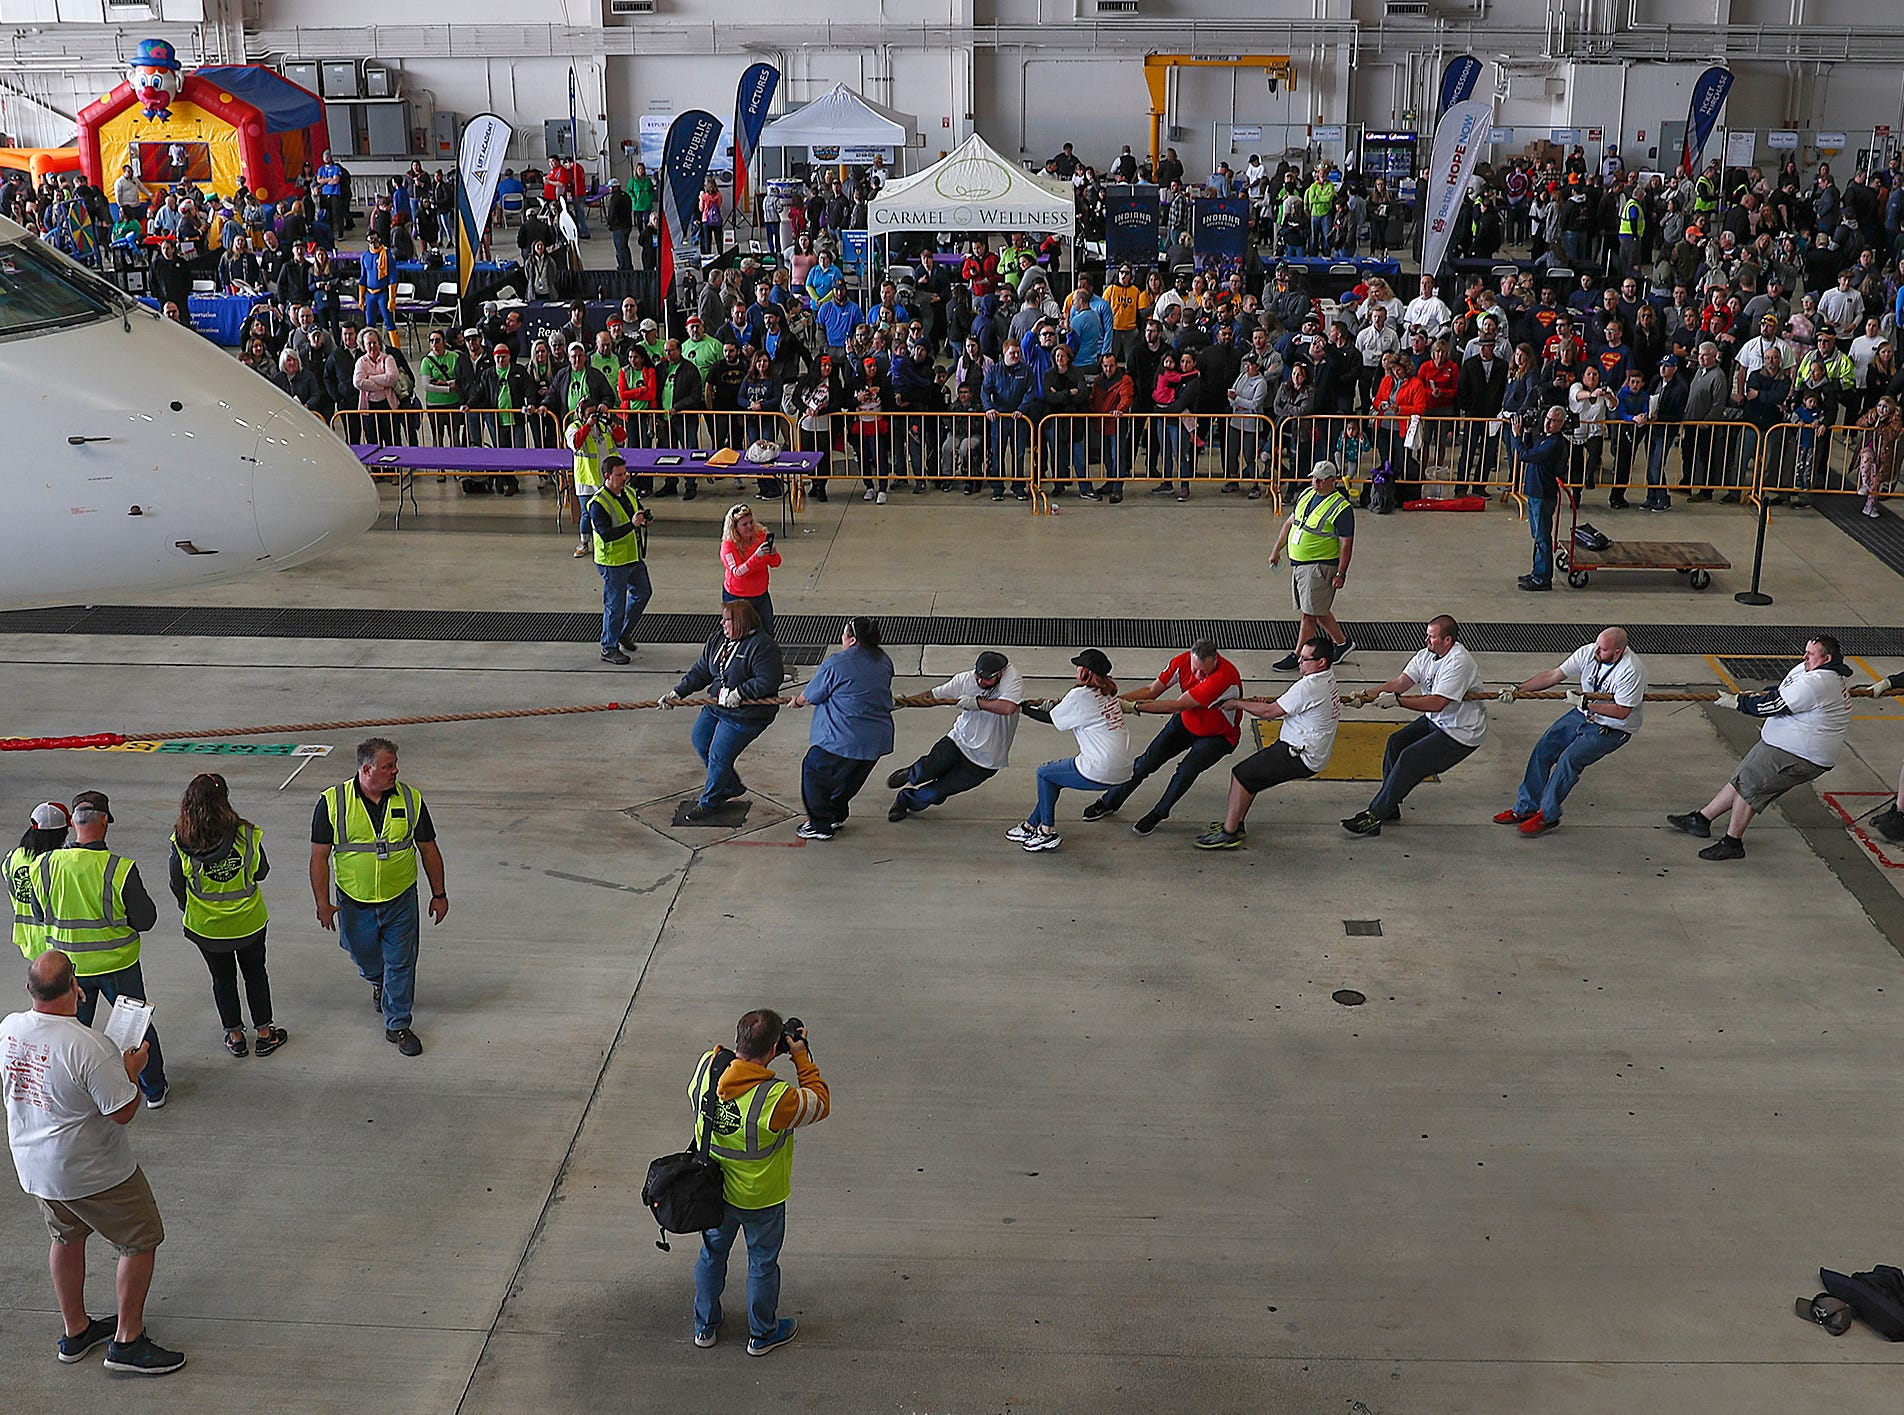 Team AAR during the 9th Annual Republic Airways Plane Pull at the Republic Airways Hanger at the Indianapolis International Airport on Saturday, April 13, 2019. The event benefits Indiana Children's Wish Fund, Peyton Manning Children's Hospital, Riley Children's Foundation and A Kid Again. All teams will pull an Embraer 170/175 aircraft 15 feet.